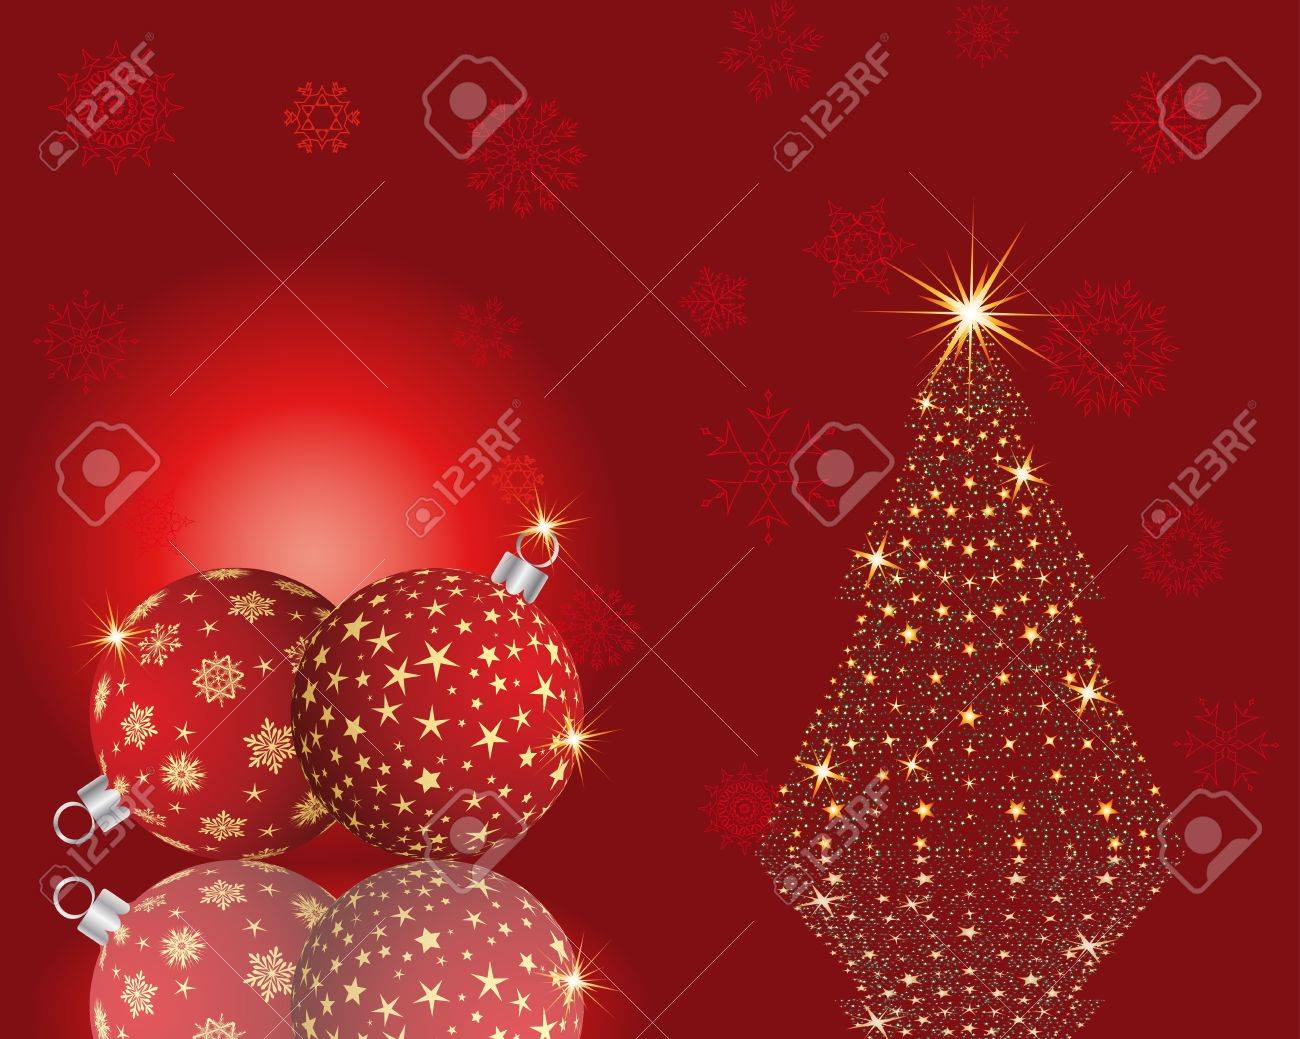 Beautiful Christmas (New Year) card. Vector illustration. Stock Vector - 14898968